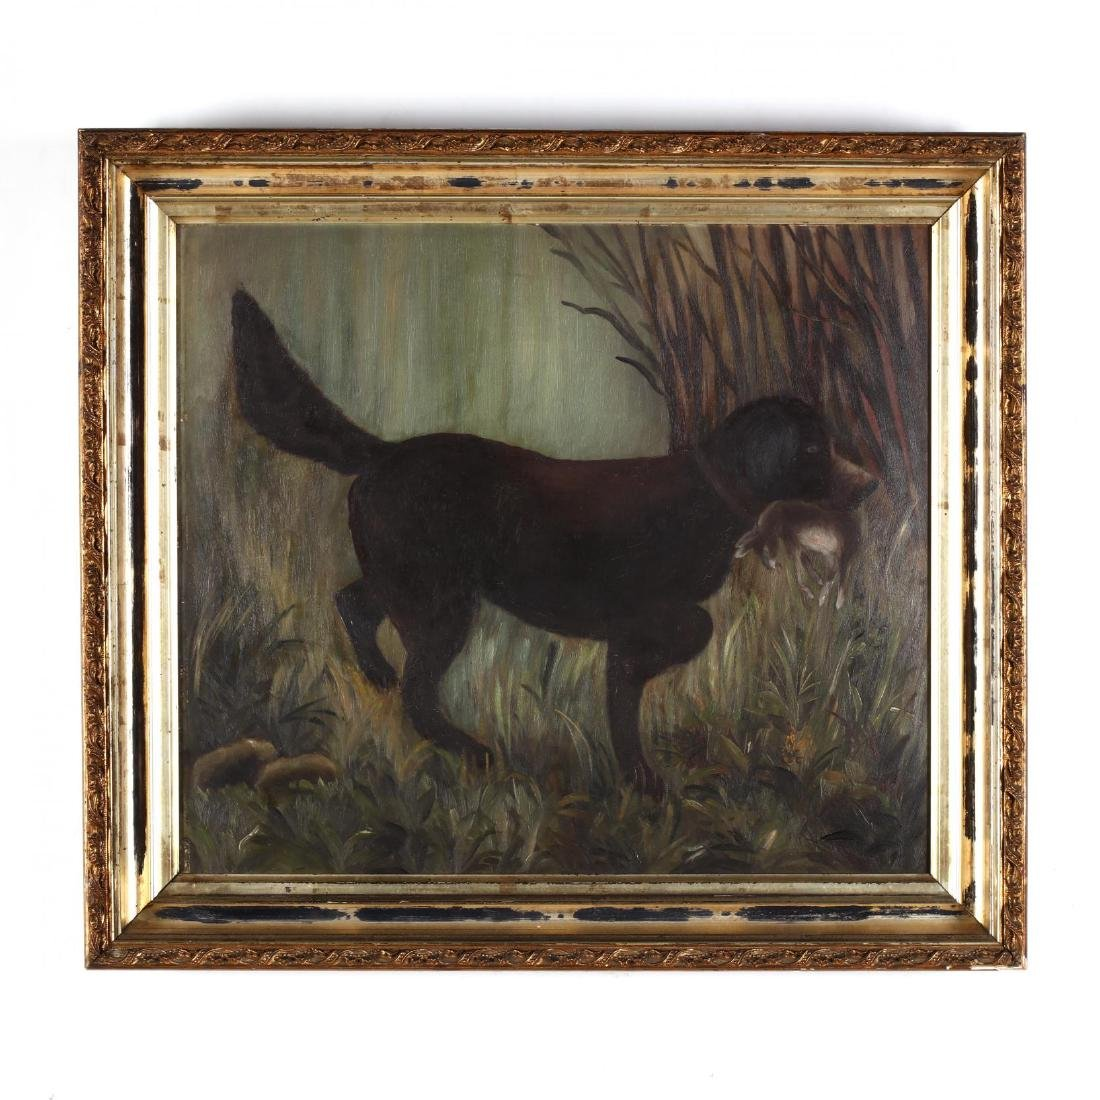 An American Folk Art Painting of a Hound with Hare